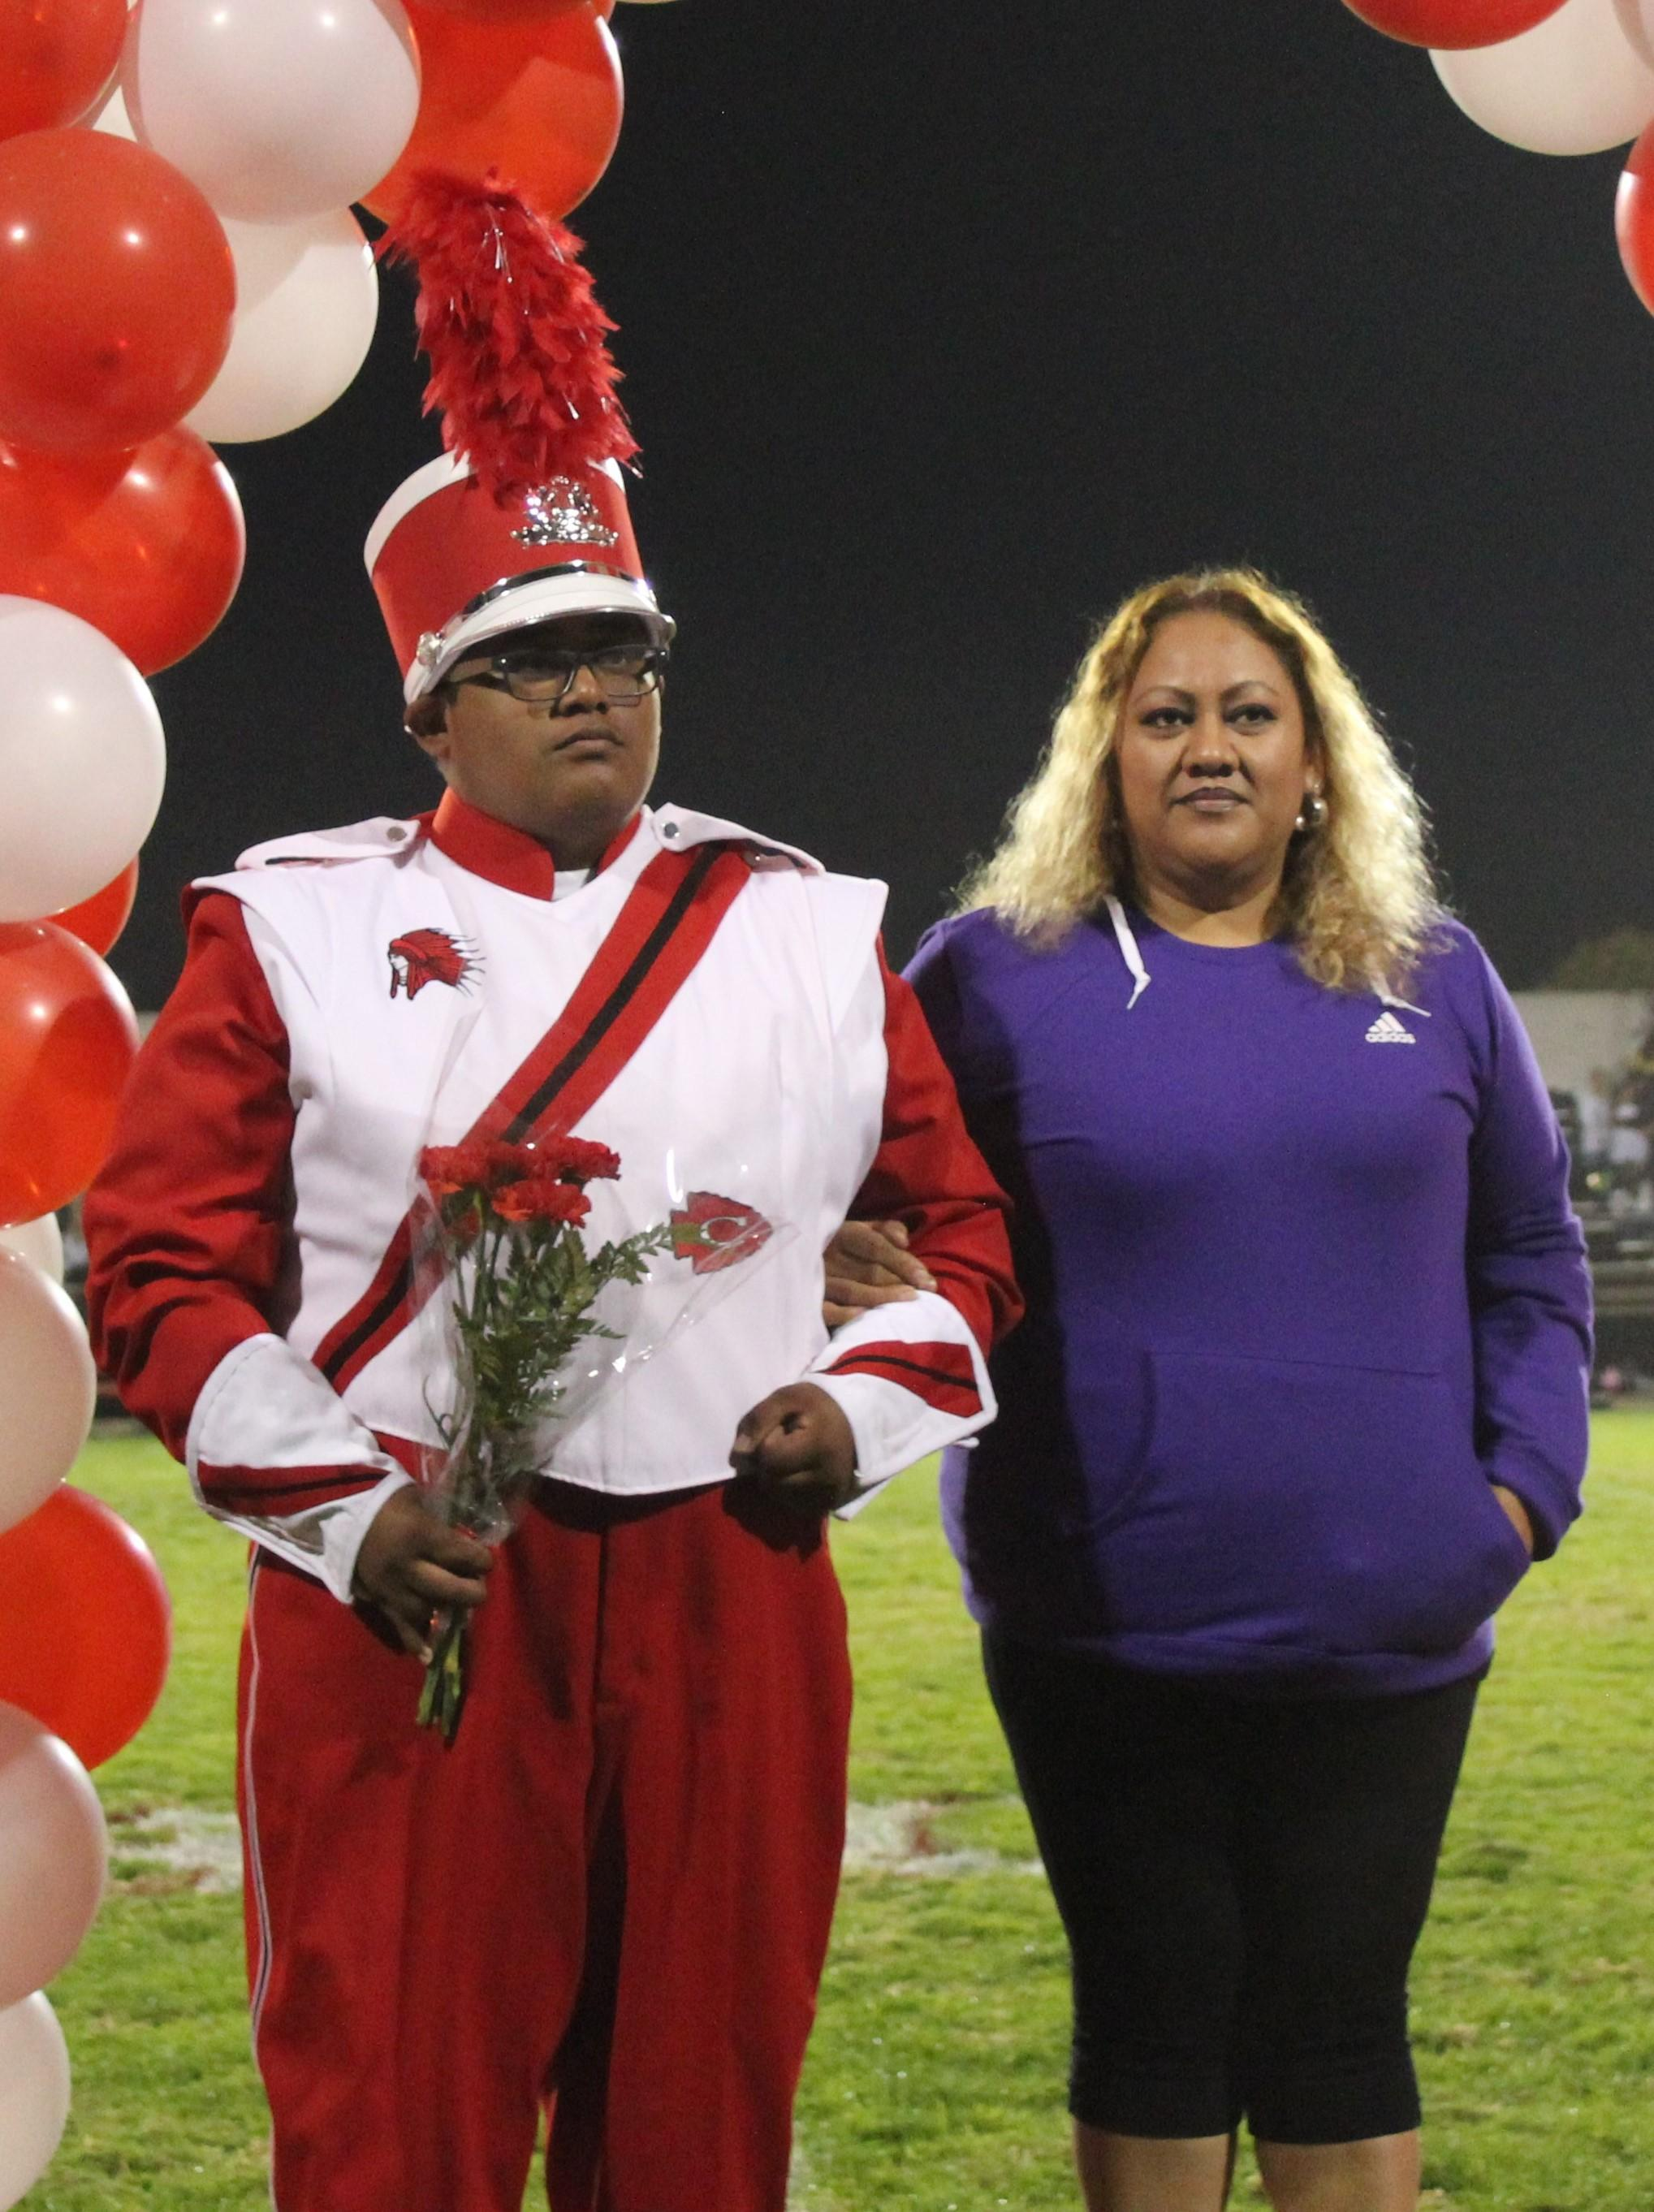 Anthony Lascarez and his supporters at Senior Night.